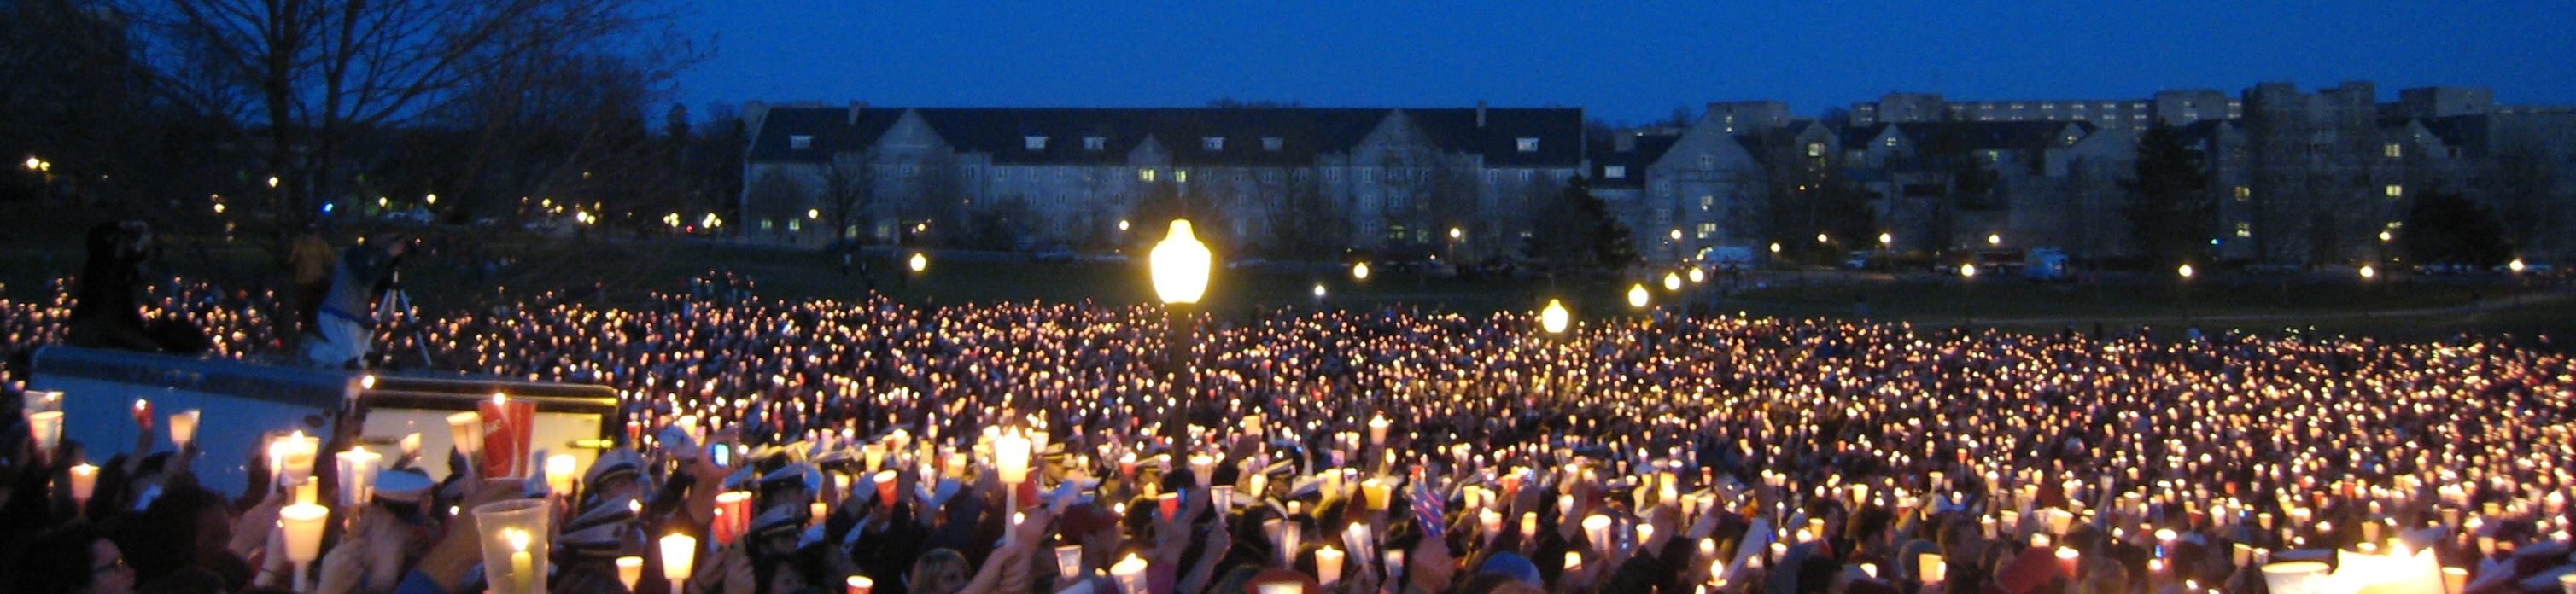 Candle Ligh Vigil For Victims of Virginia Tech Massacre